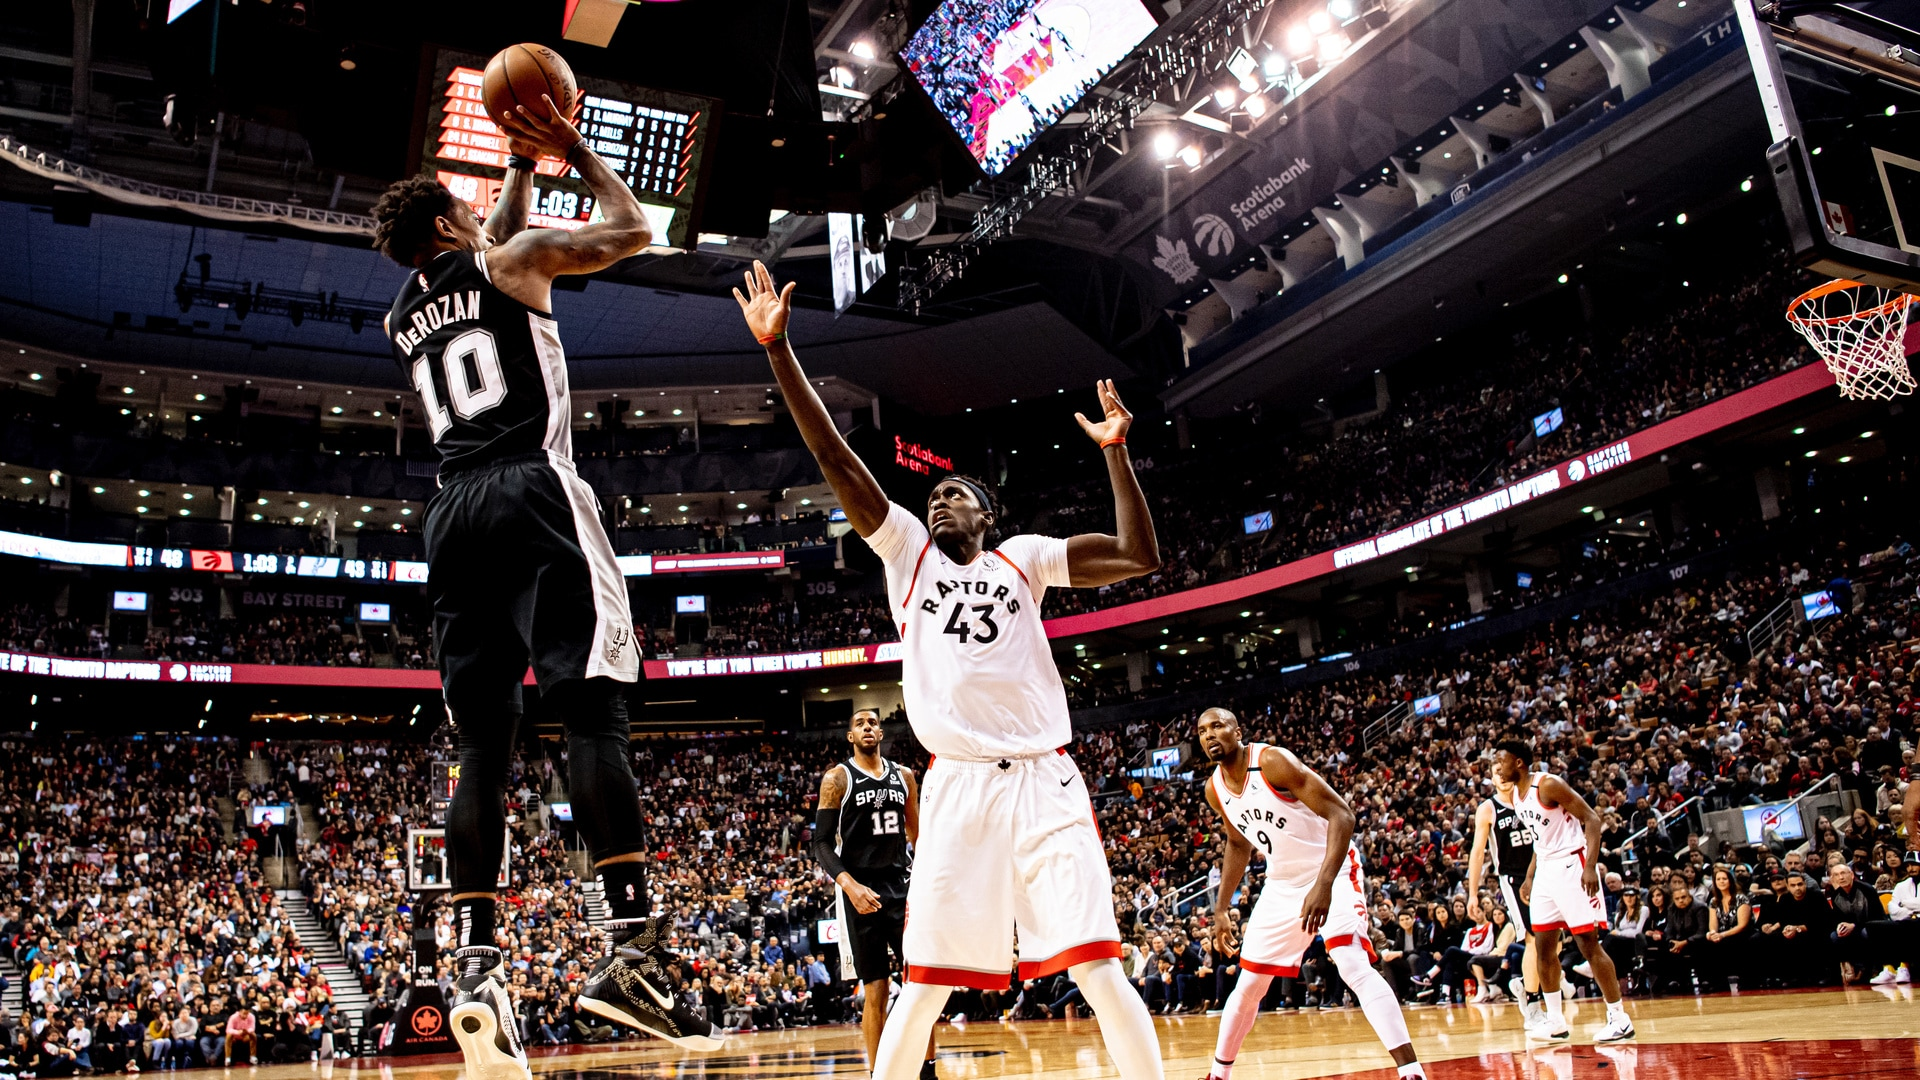 Highlights: Spurs vs. Raptors 1/12